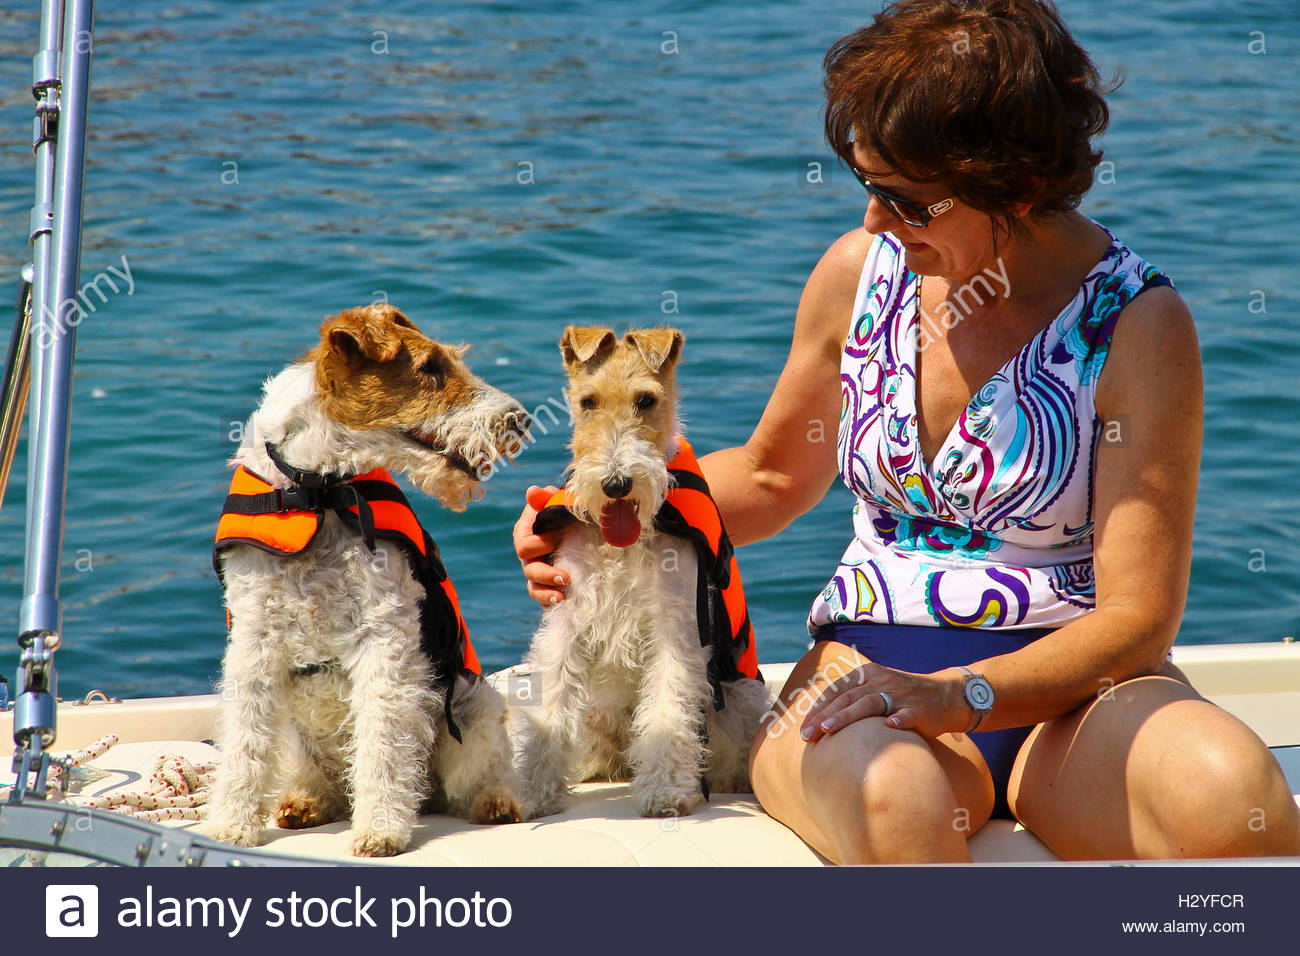 Safe For Pets Stock Photos & Safe For Pets Stock Images - Alamy